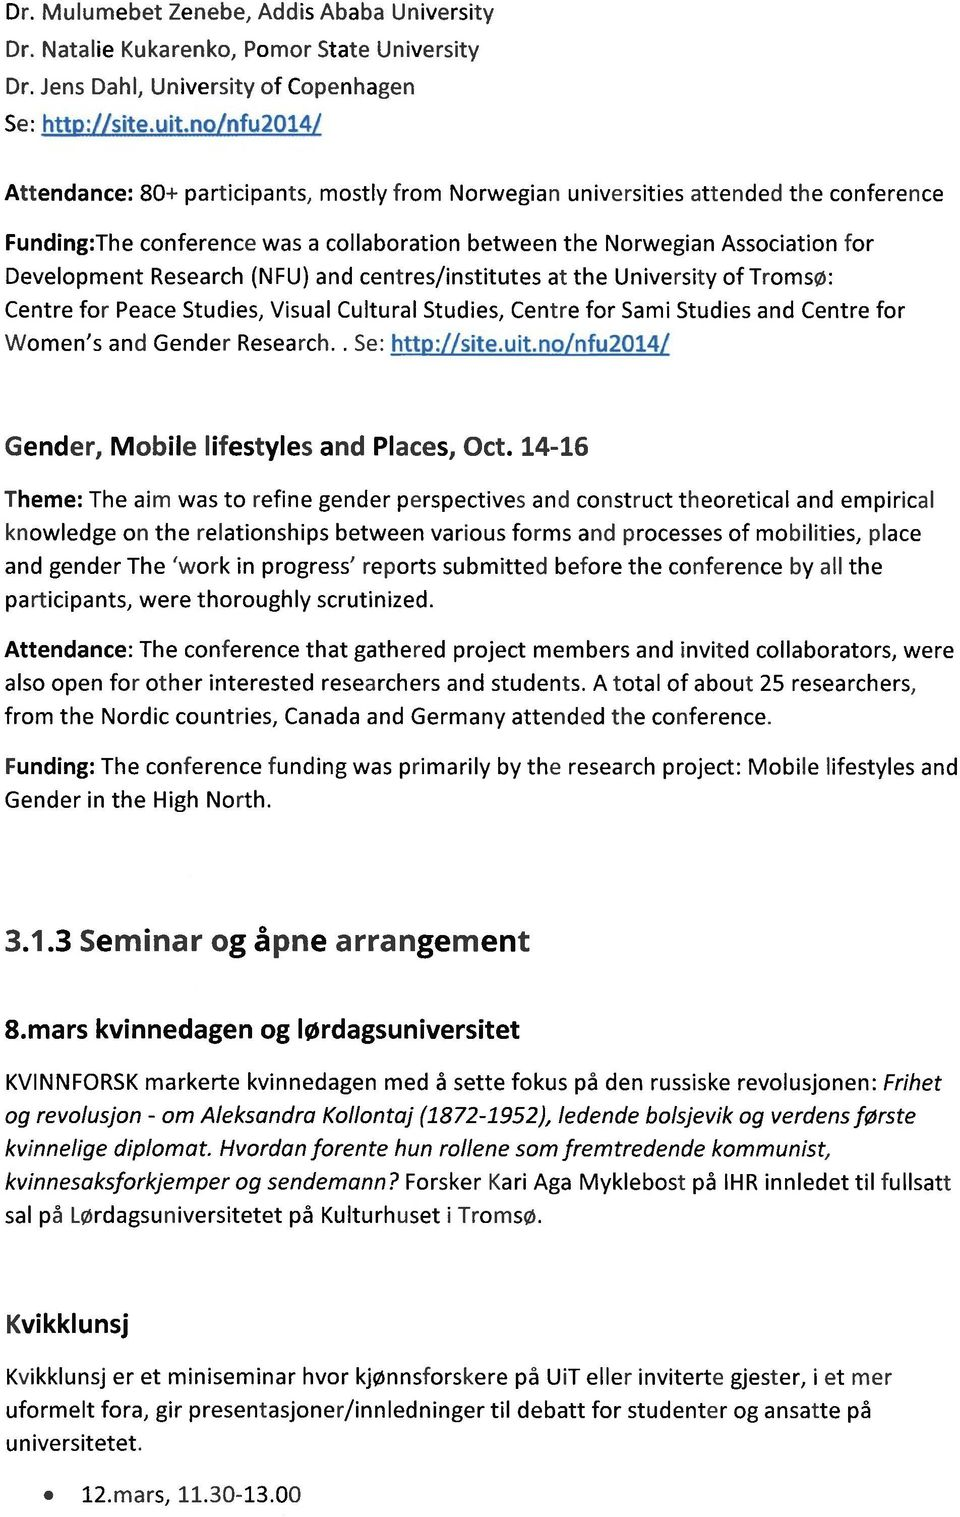 Research (NFU) and centres/institutes at the University of : Centre for Peace Studies, Visual Cultural Studies, Centre for Sami Studies and Centre for Women's and Gender Research.. Se: htt : site.uit.